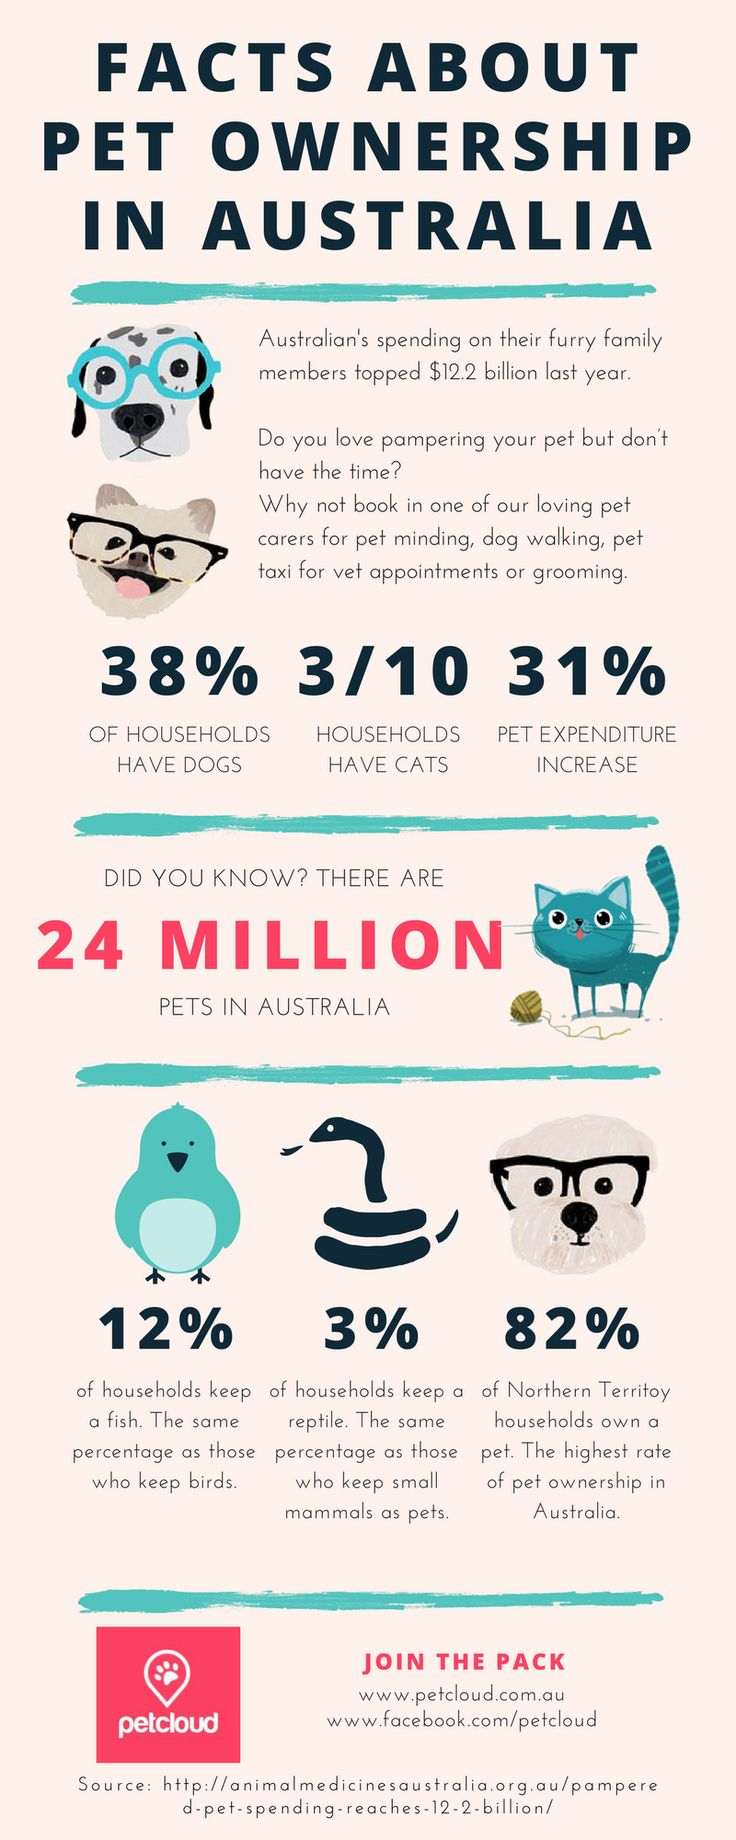 Facts about Pet Ownership in Australia.